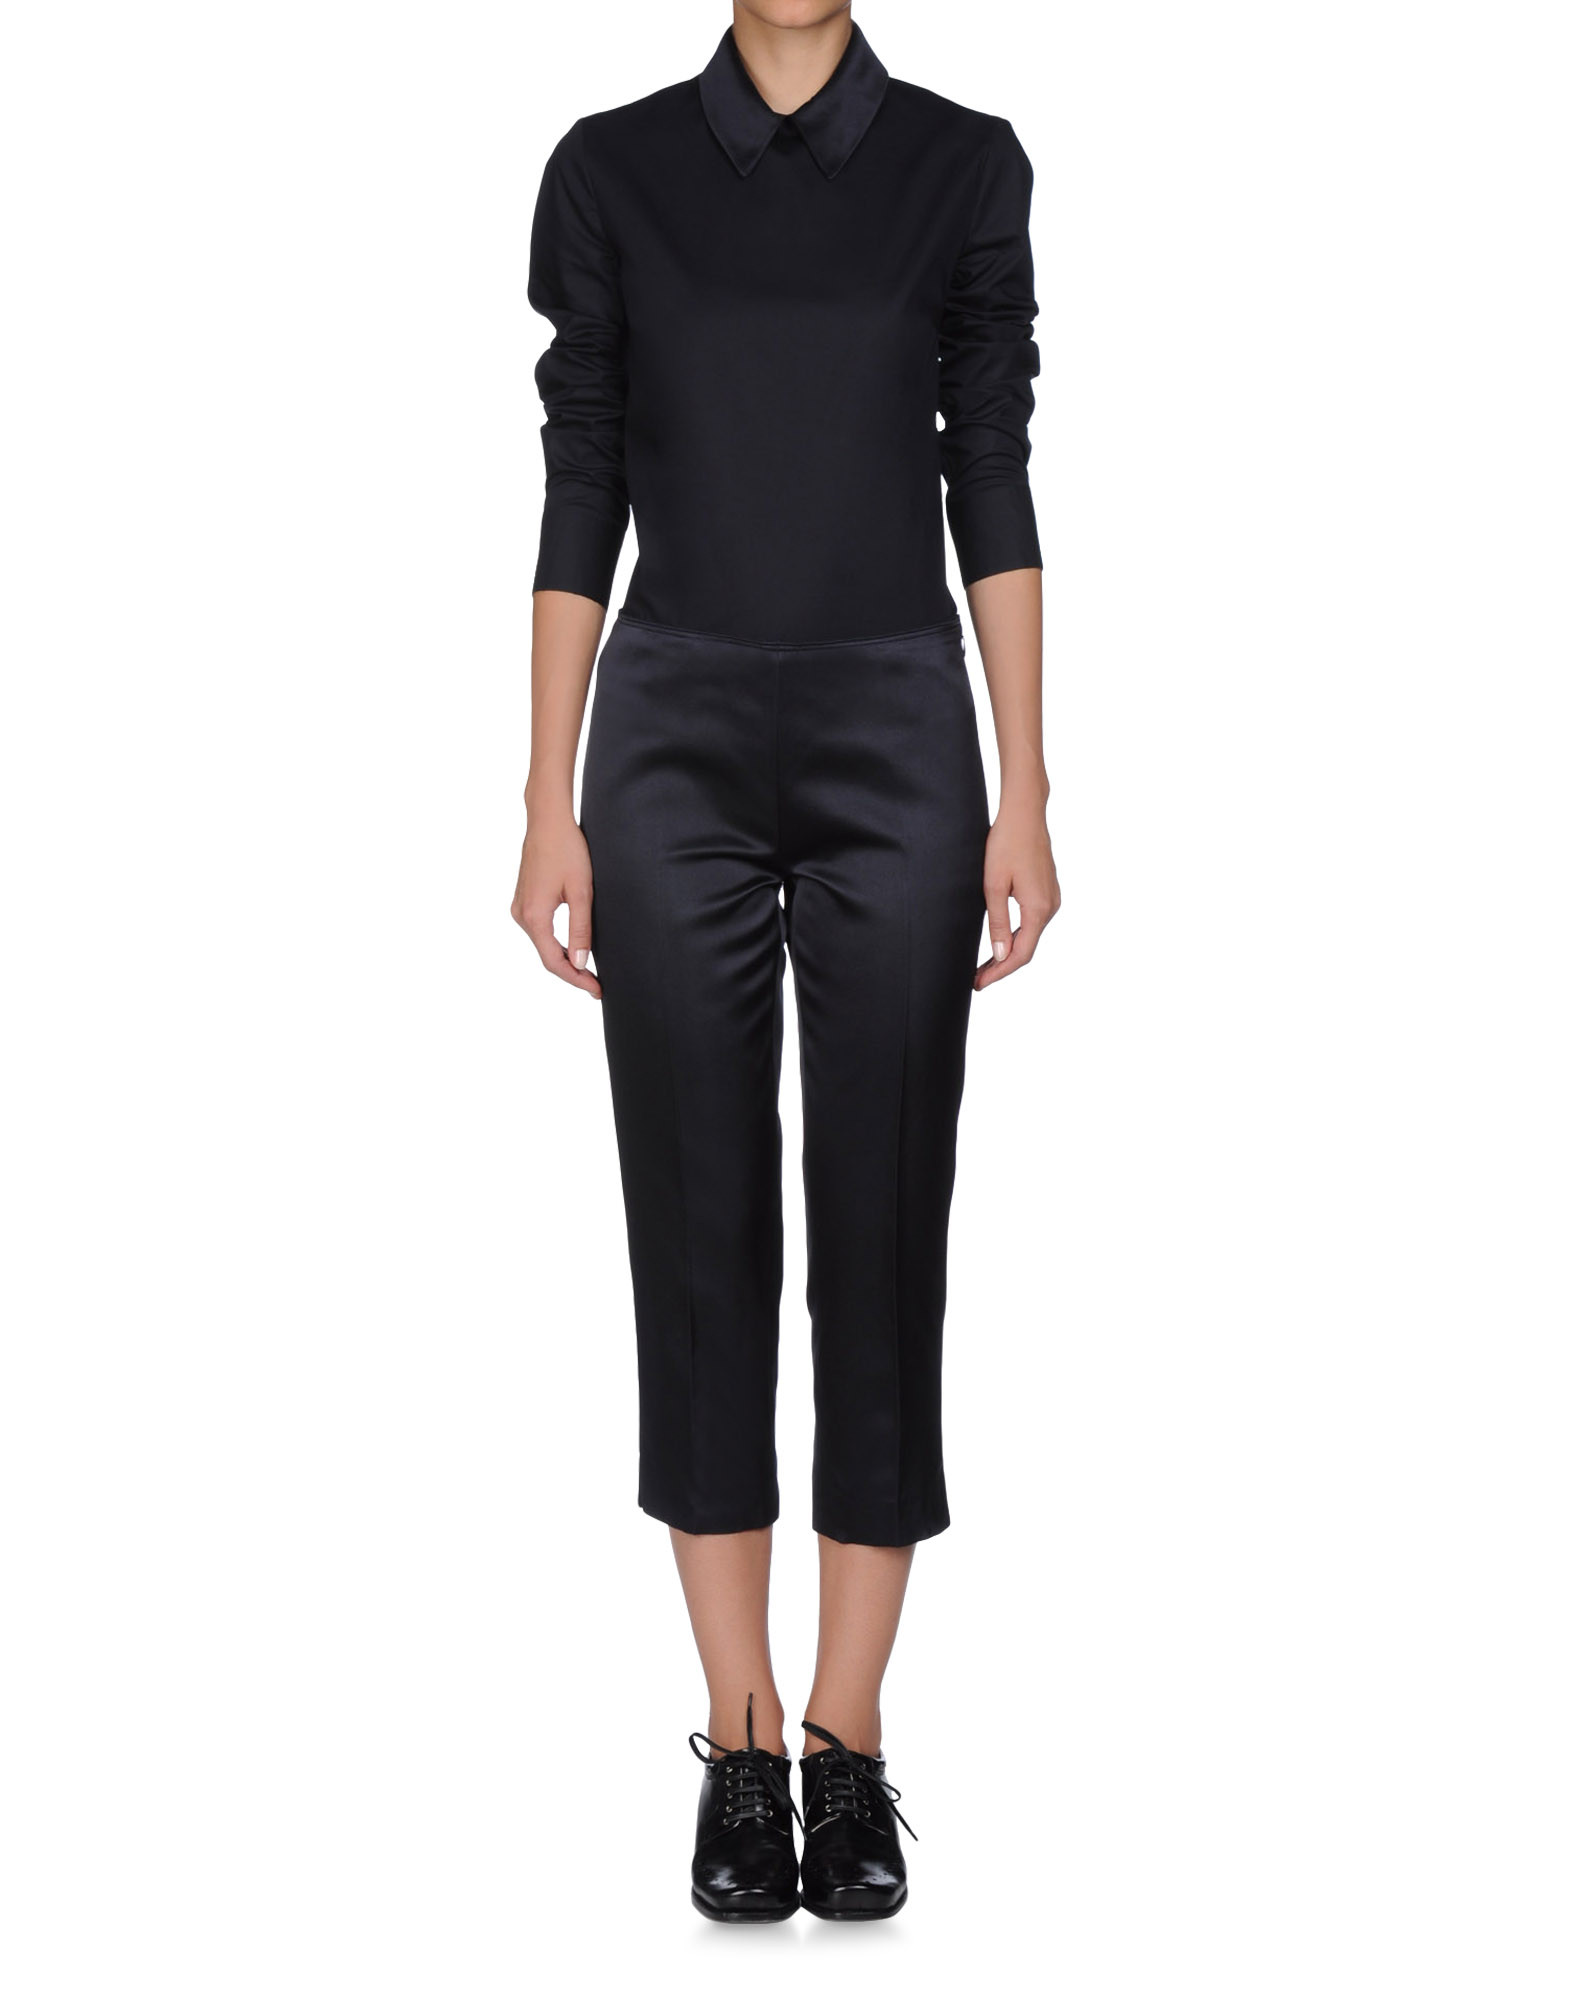 Tailored pant - JIL SANDER NAVY Online Store